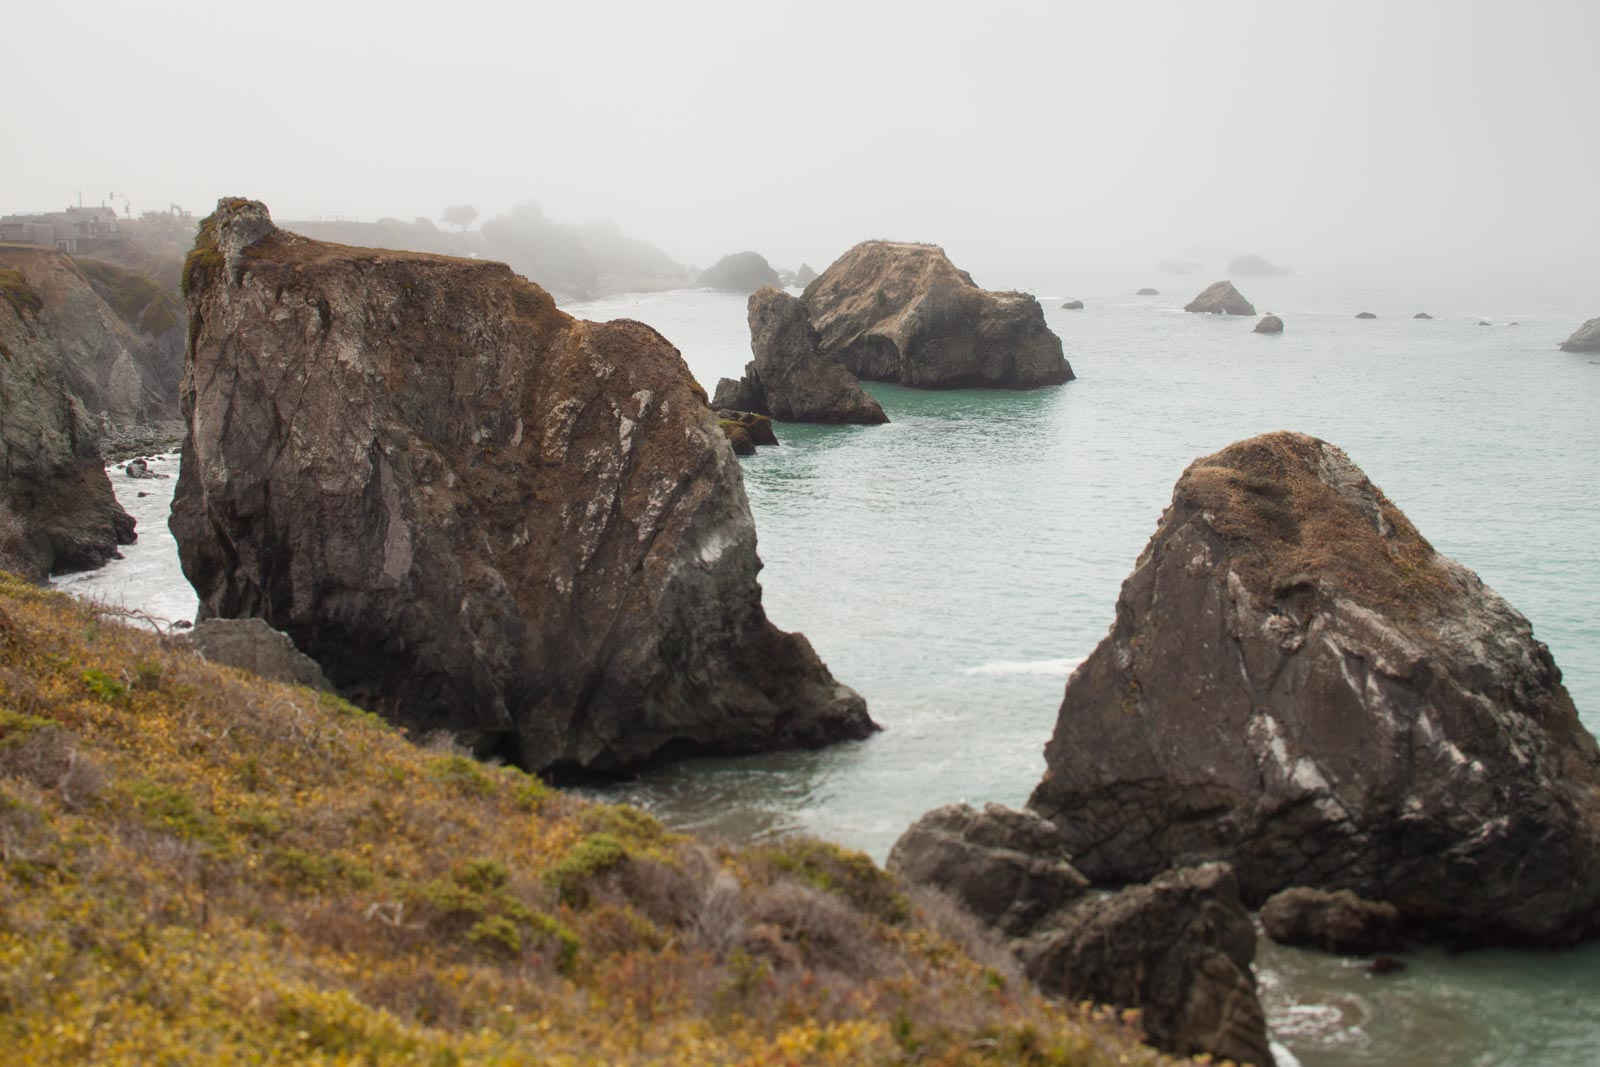 The view from Duncan's Cove, just south of the Russian River, Sonoma Coast, California. ©Kevin Day / Opening a Bottle